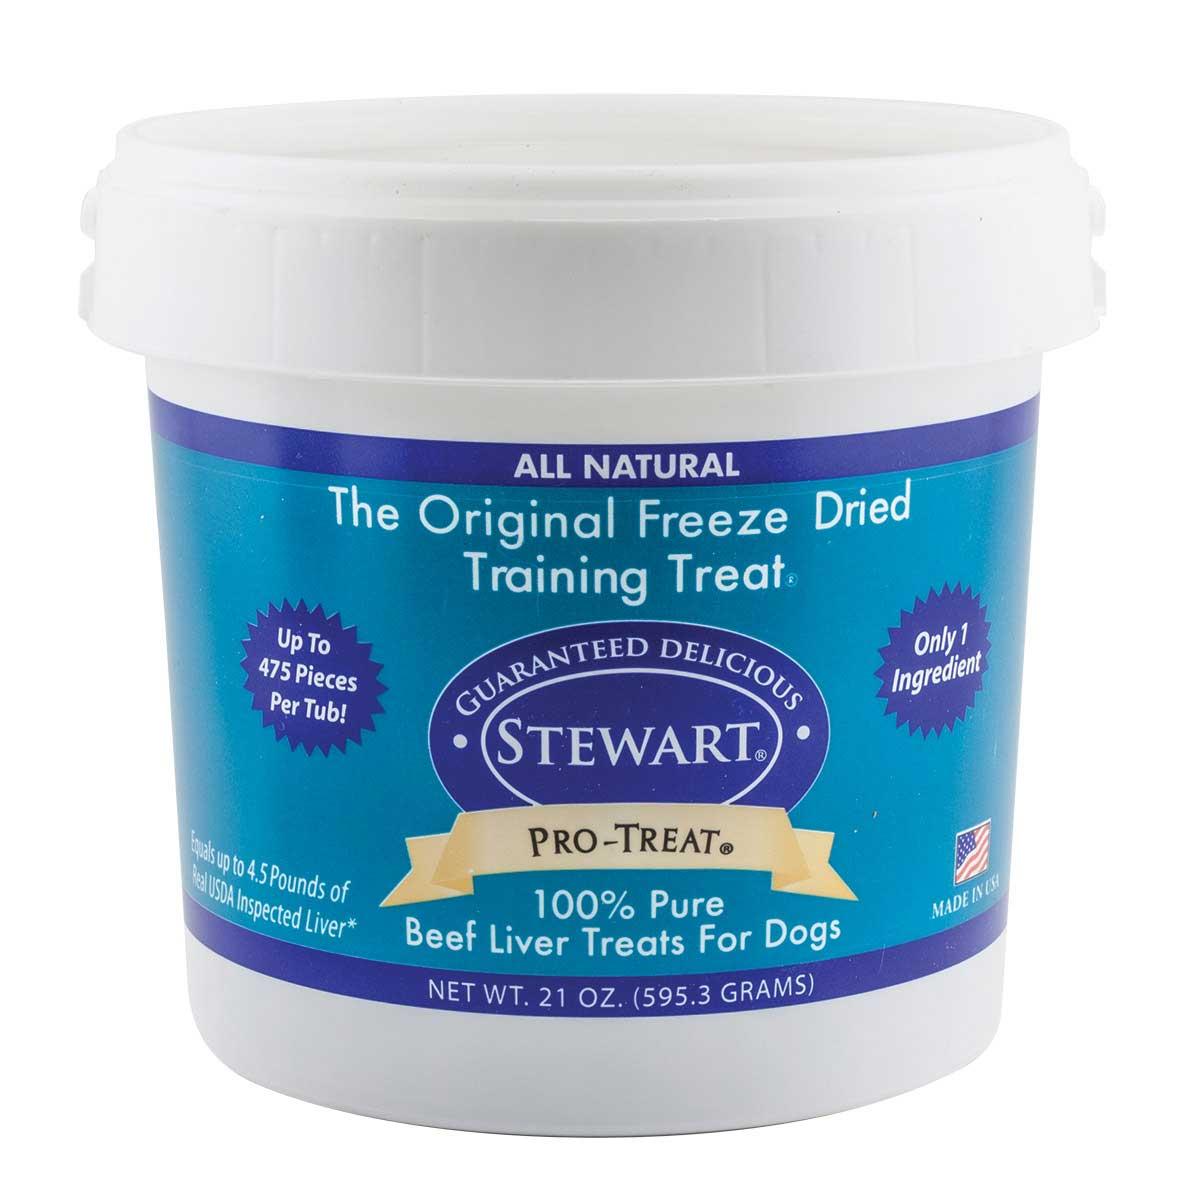 Stewart Freeze Dried Beef Liver Pro-Treats For Dogs 21 oz